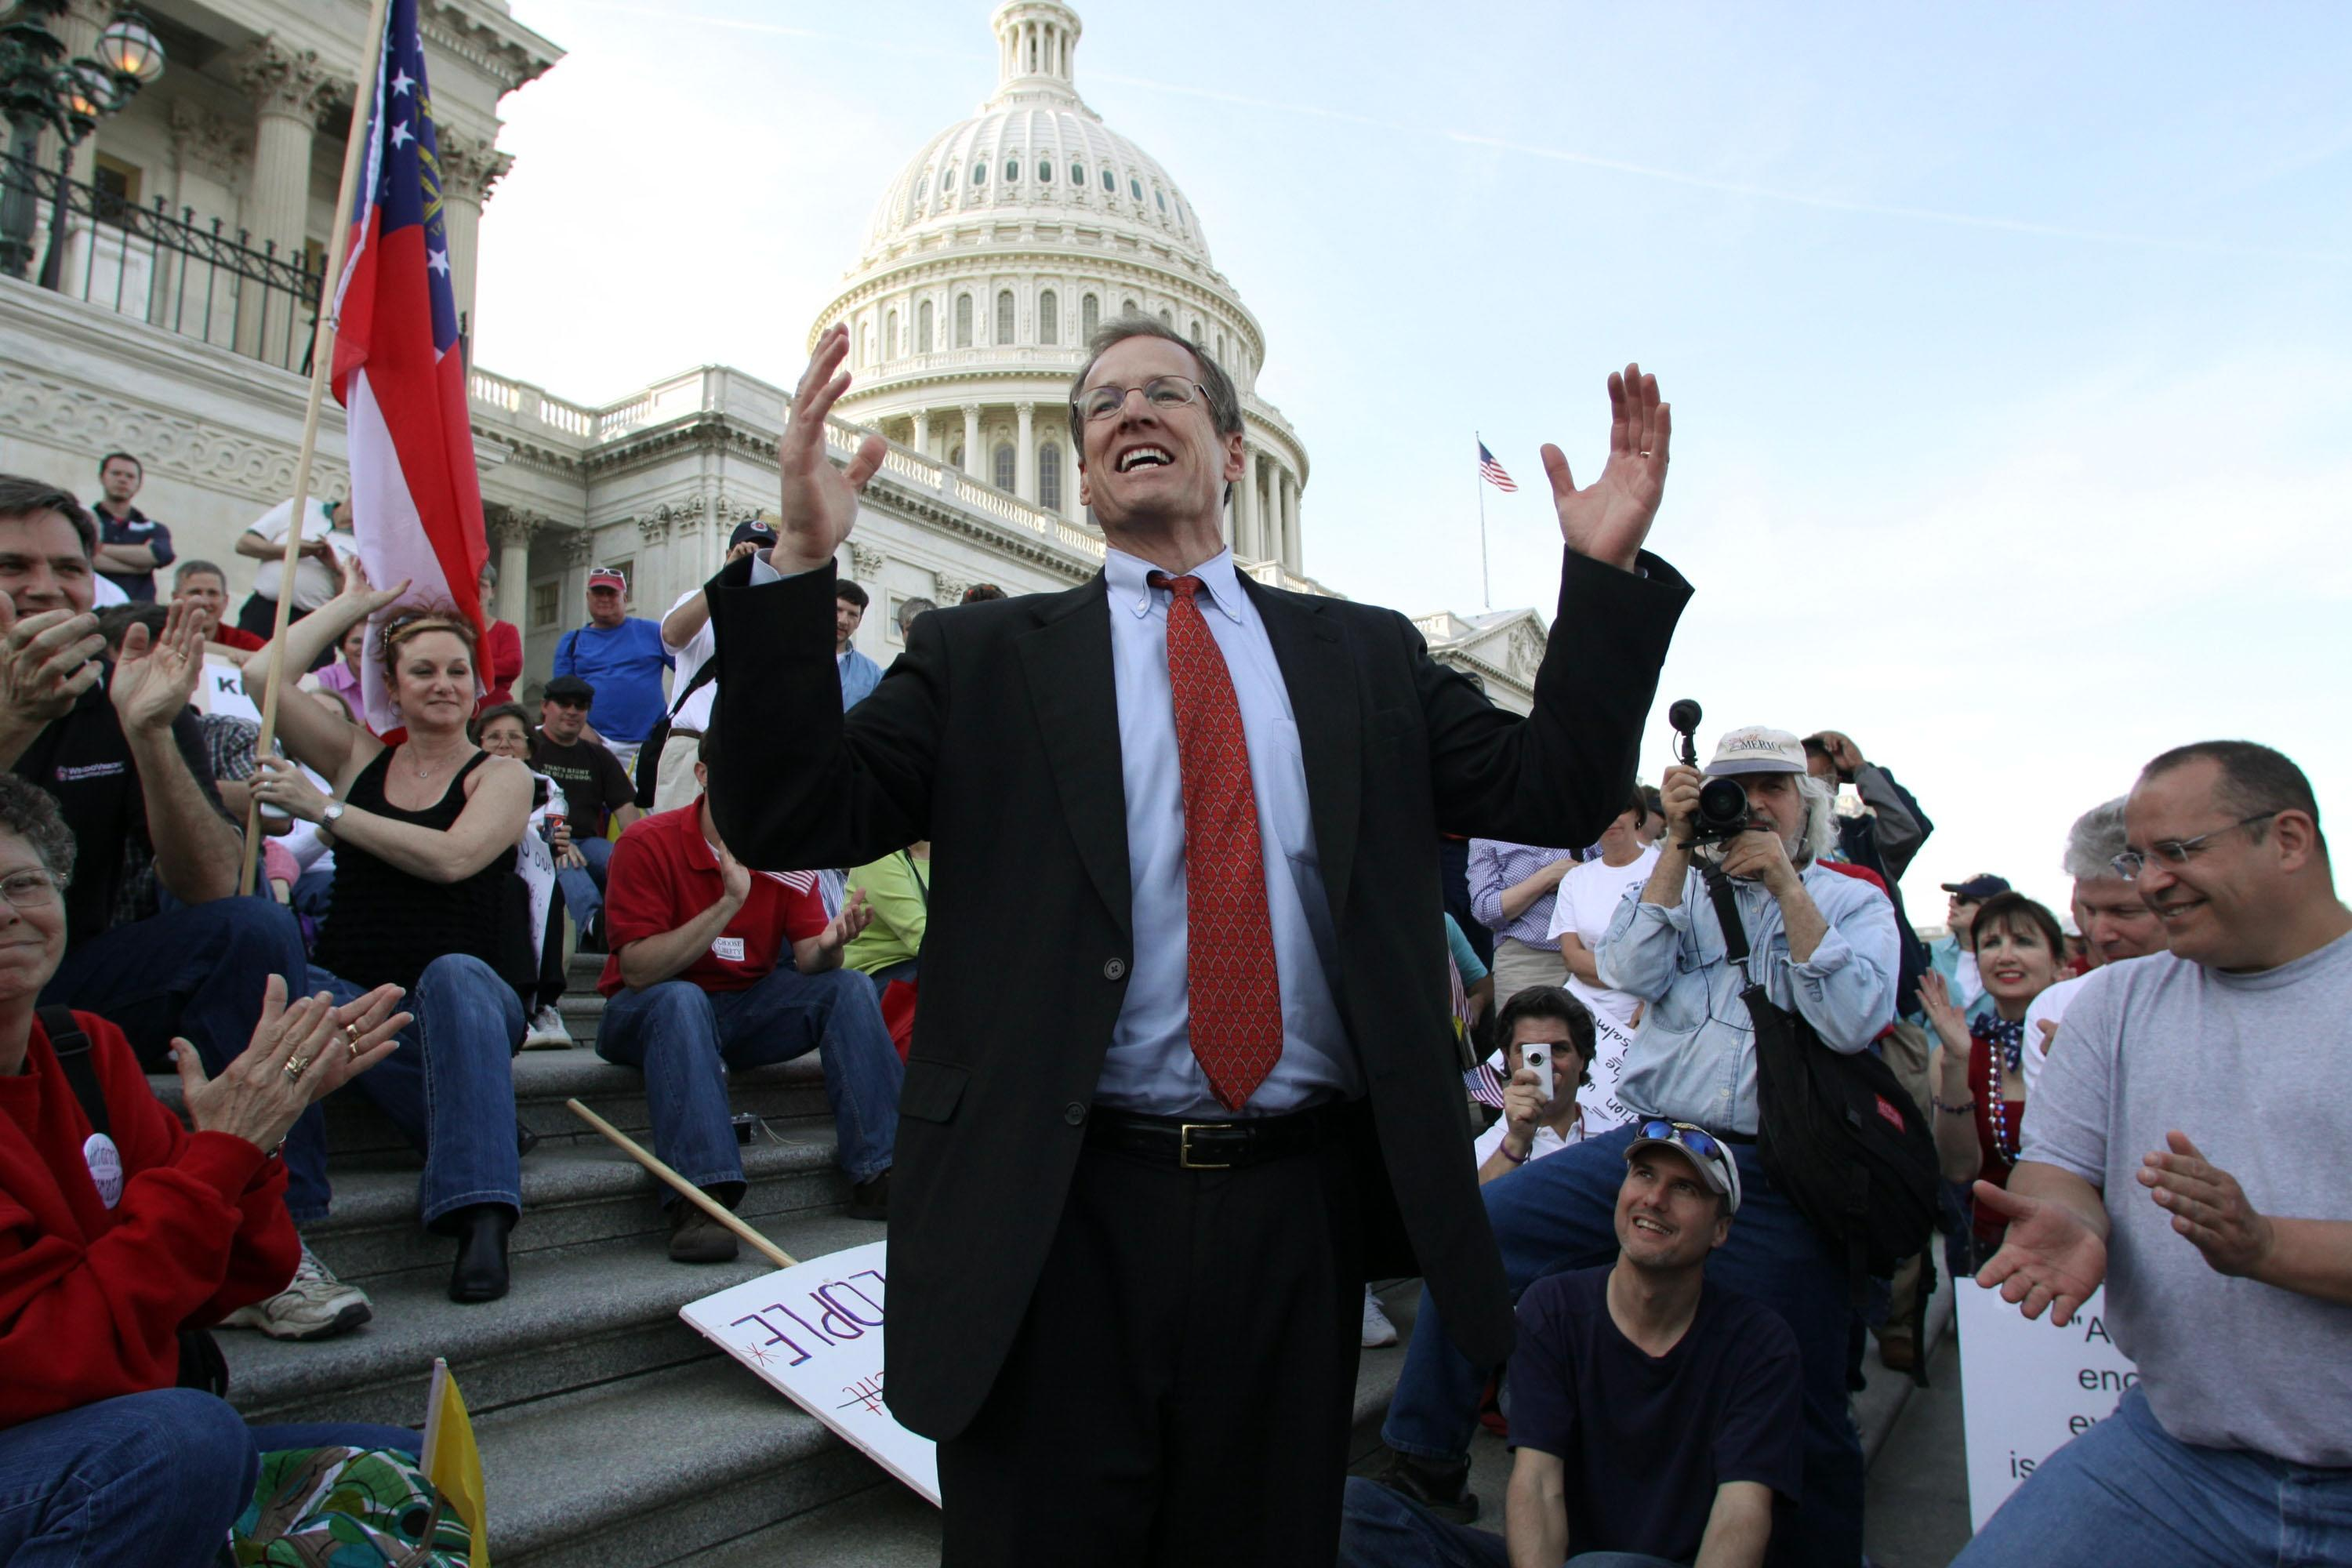 FILE - In this March 20, 2010 file photo, Rep. Jack Kingston, R-Ga., speaks to people demonstrating against the health care bill on the U.S. Capitol steps a day before Congress is set to vote on health care reform on Capitol Hill in Washington. Republicans see the 2014 midterm elections as a chance to capitalize on voter frustration with the problem-plagued health care overhaul, but the GOP first must settle a slate of Senate primaries where conservatives are arguing over the best way to oppose President Barack Obama's signature law. Kingston, who wants to succeed retiring GOP Sen. Saxby Chambliss, stepped into the rift recently when he seemed to scold much of his party during an interview on a conservative talk radio show.(AP Photo/Lauren Victoria Burke)